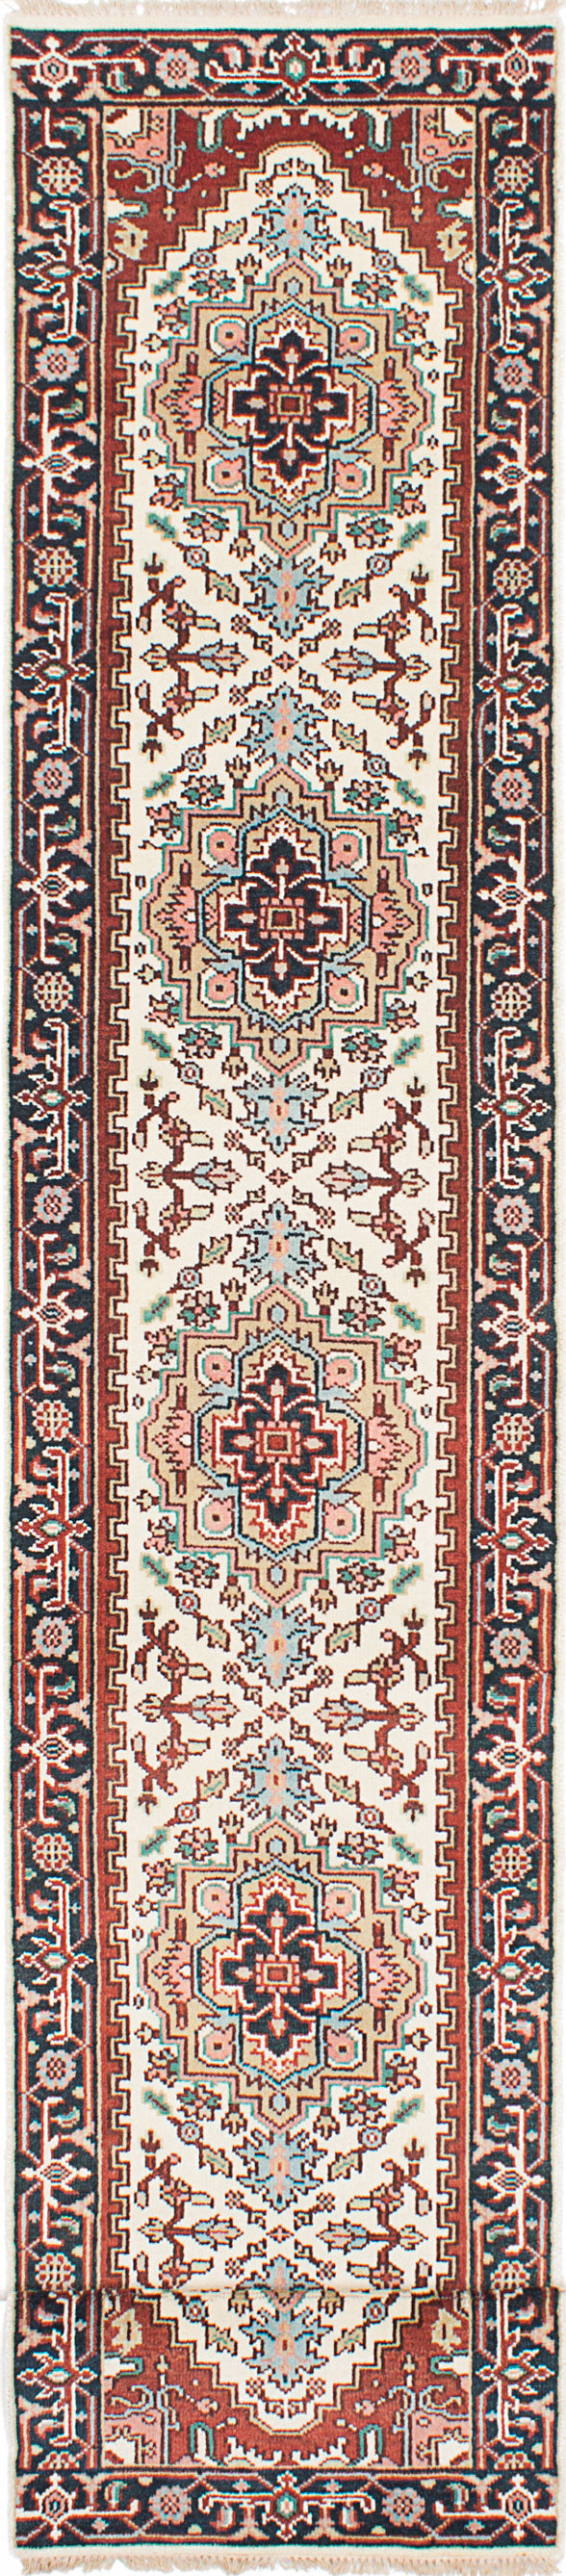 Hand-knotted Indian Floral  Traditional Serapi-Heritage Runner rug  Dark Copper, Light Cream 2.6 x 16.2